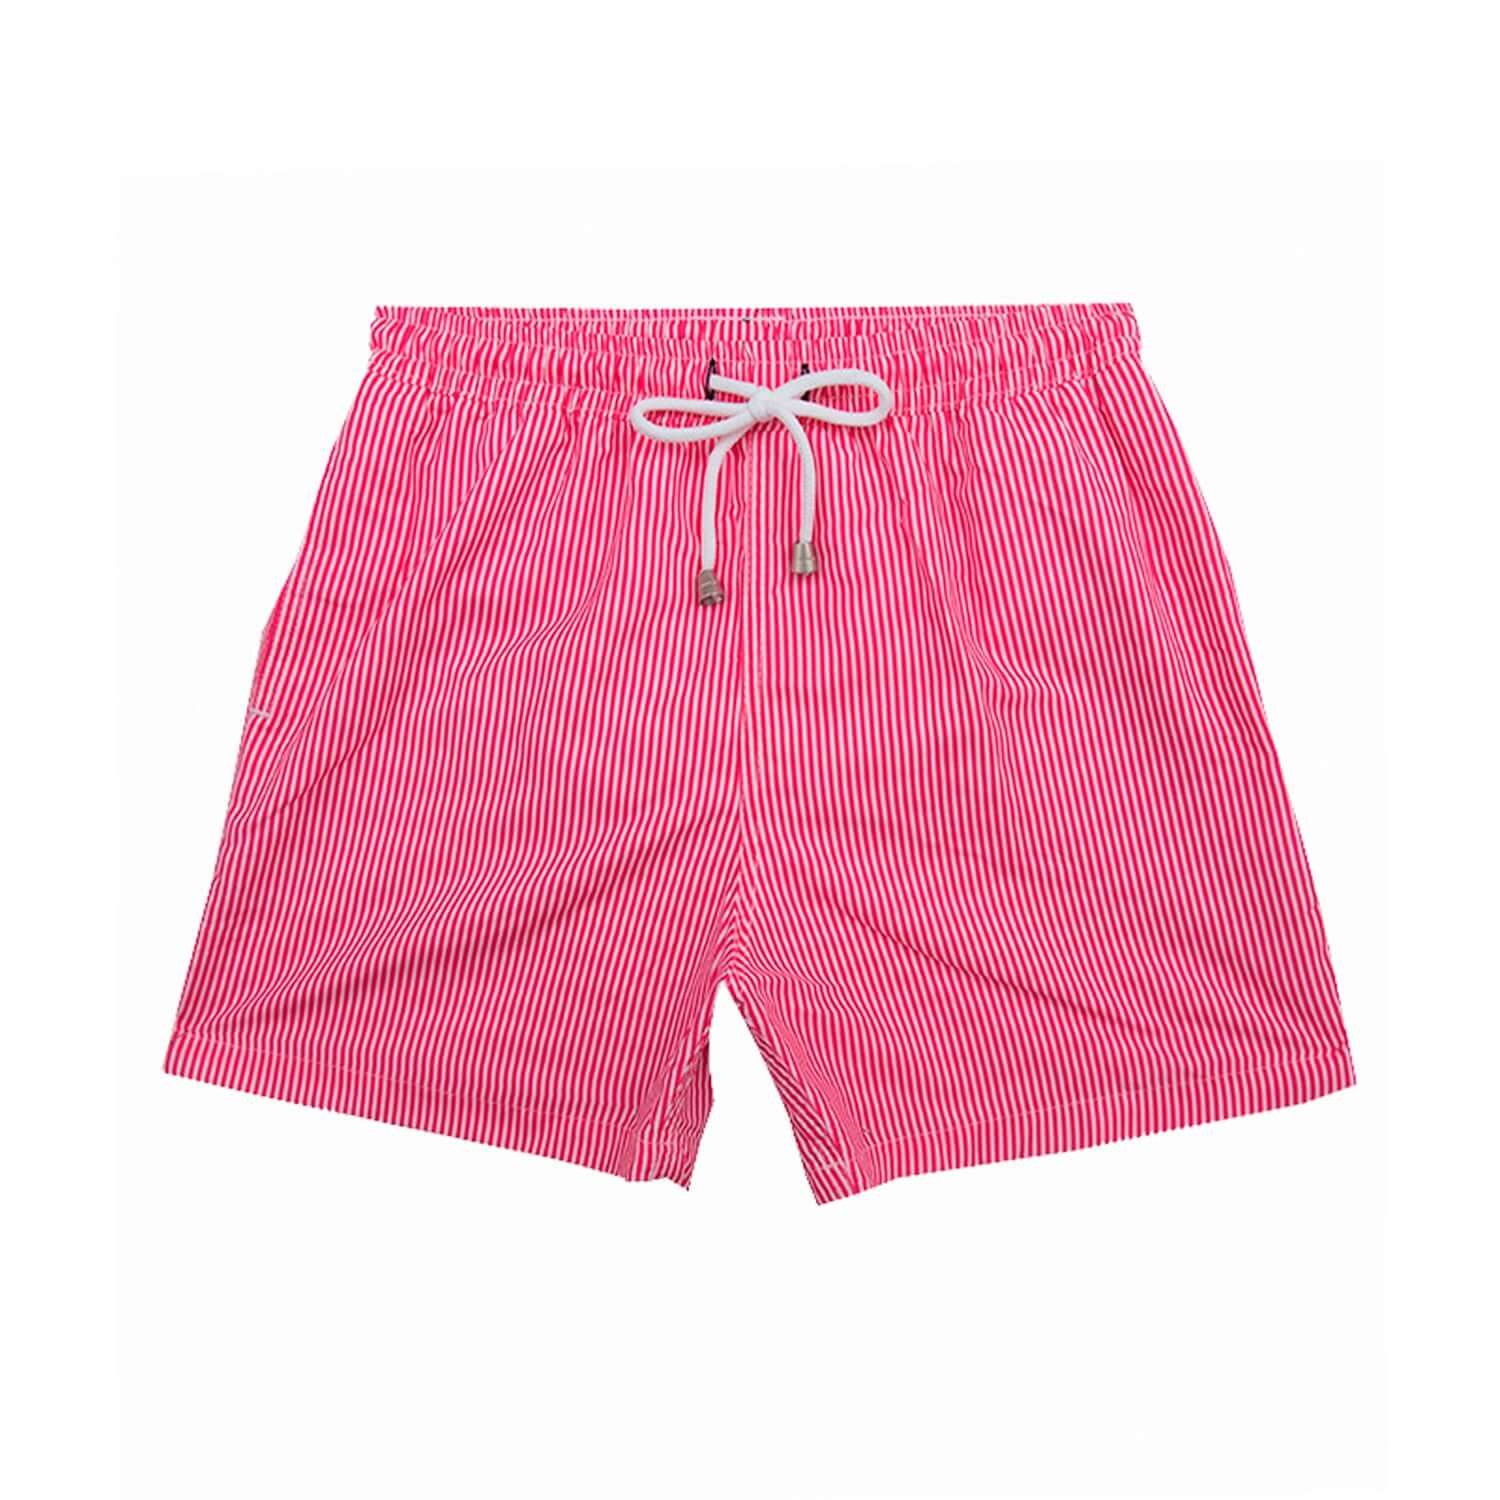 PELICANS PINK - Clorofila Sea Wear